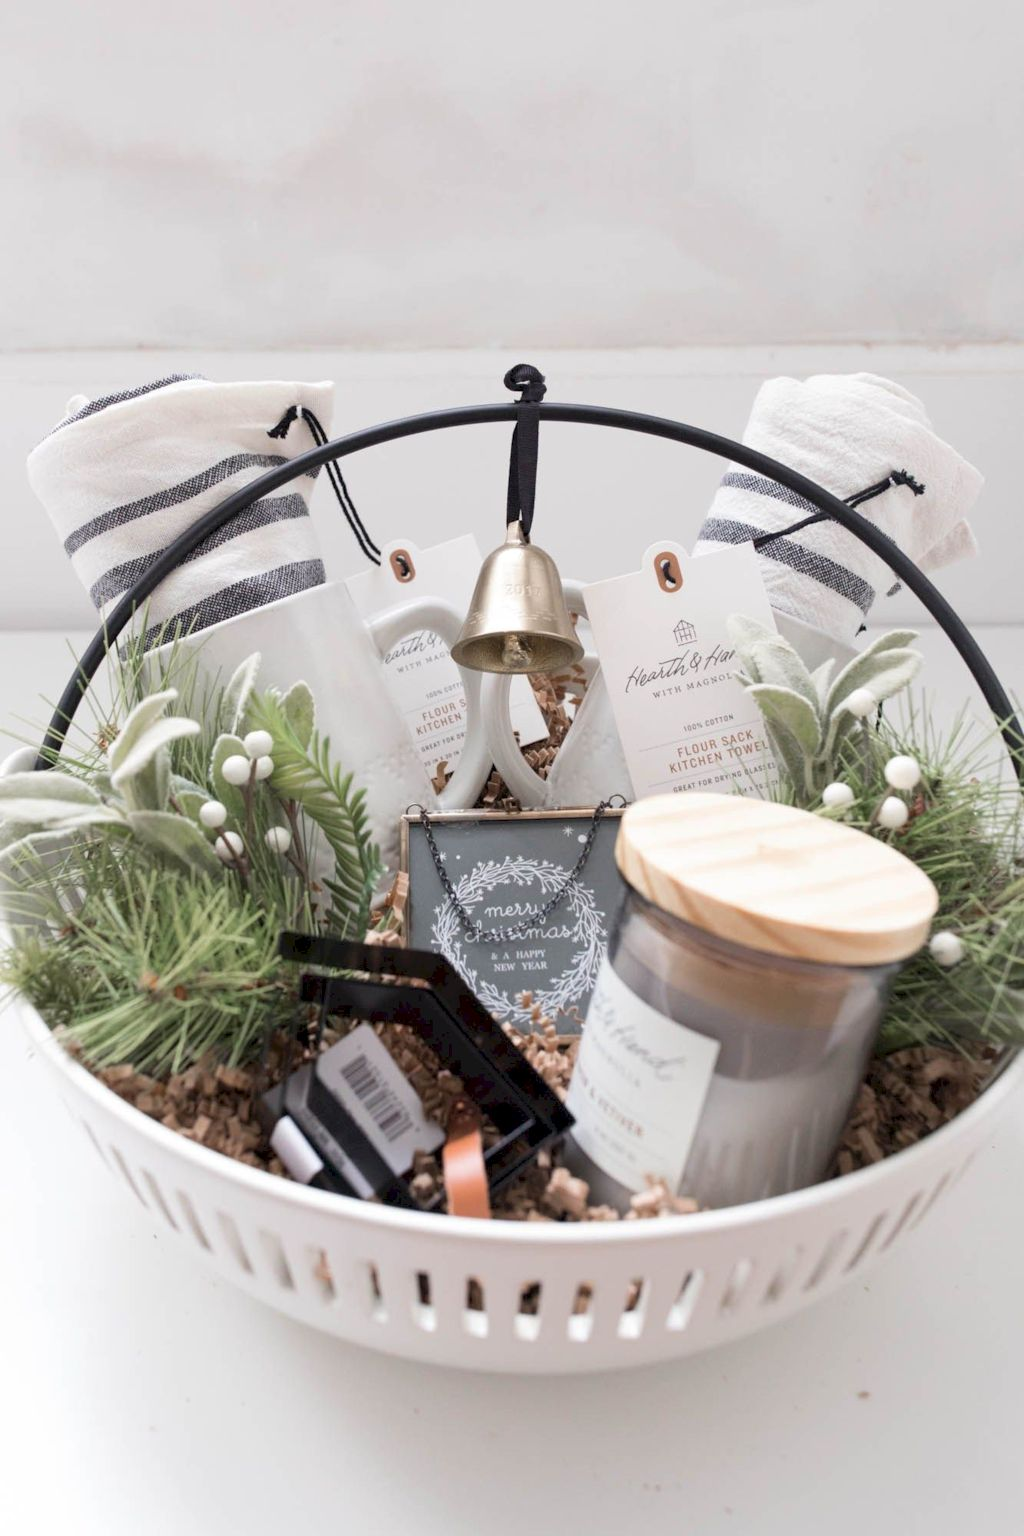 Easter basket ideas arranged with chic decoration ideal and affordable for Spring celebration Image 48